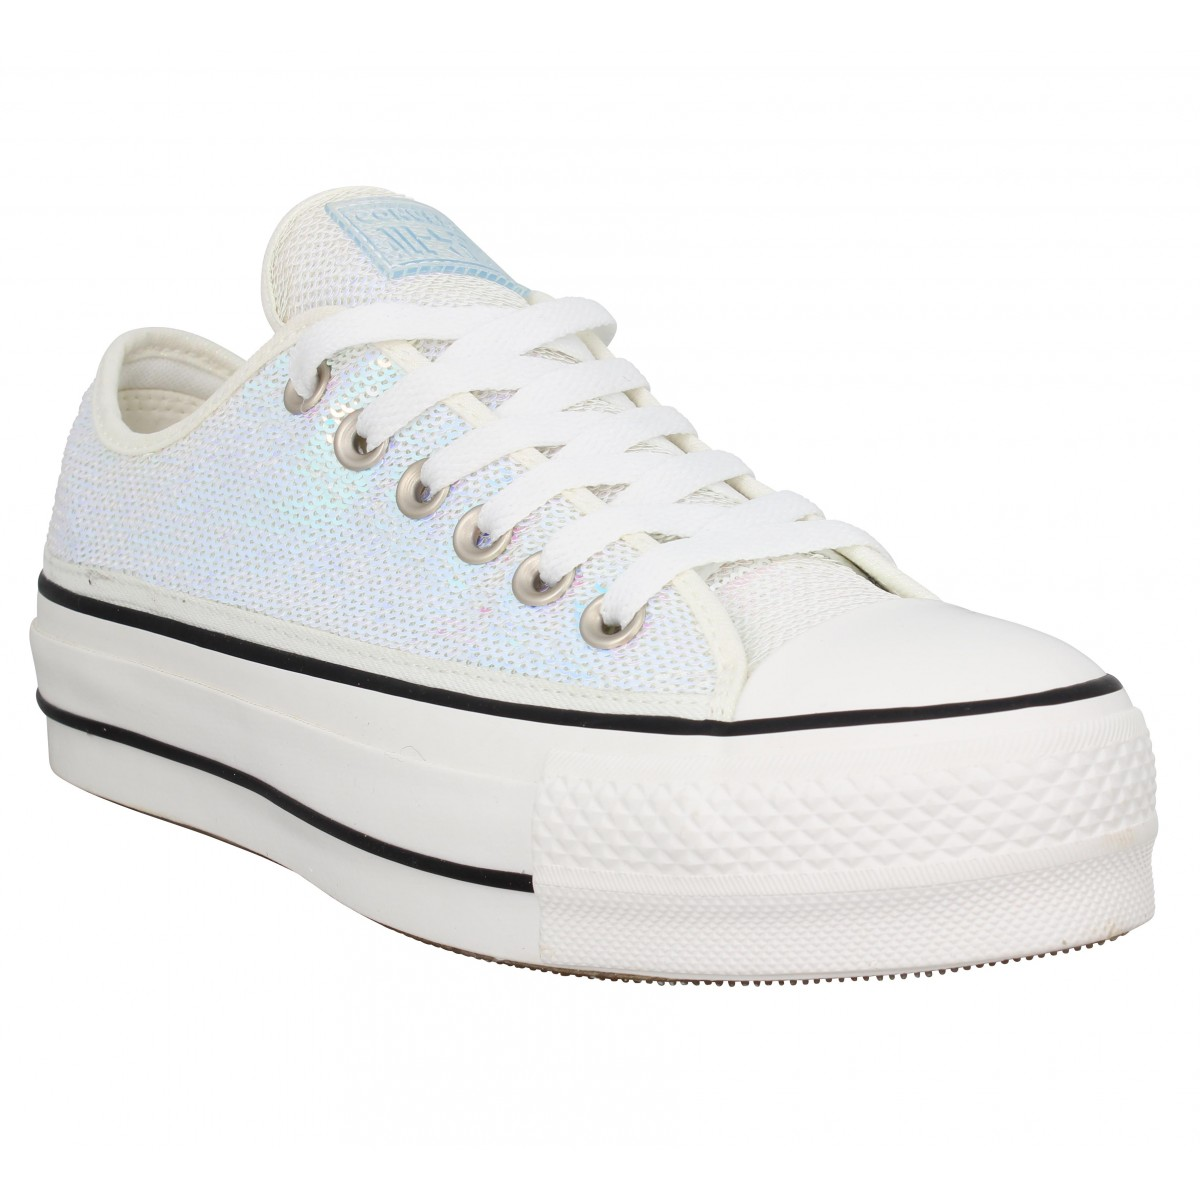 Baskets CONVERSE Chuck Taylor All Star Lift sequins Femme Silver White